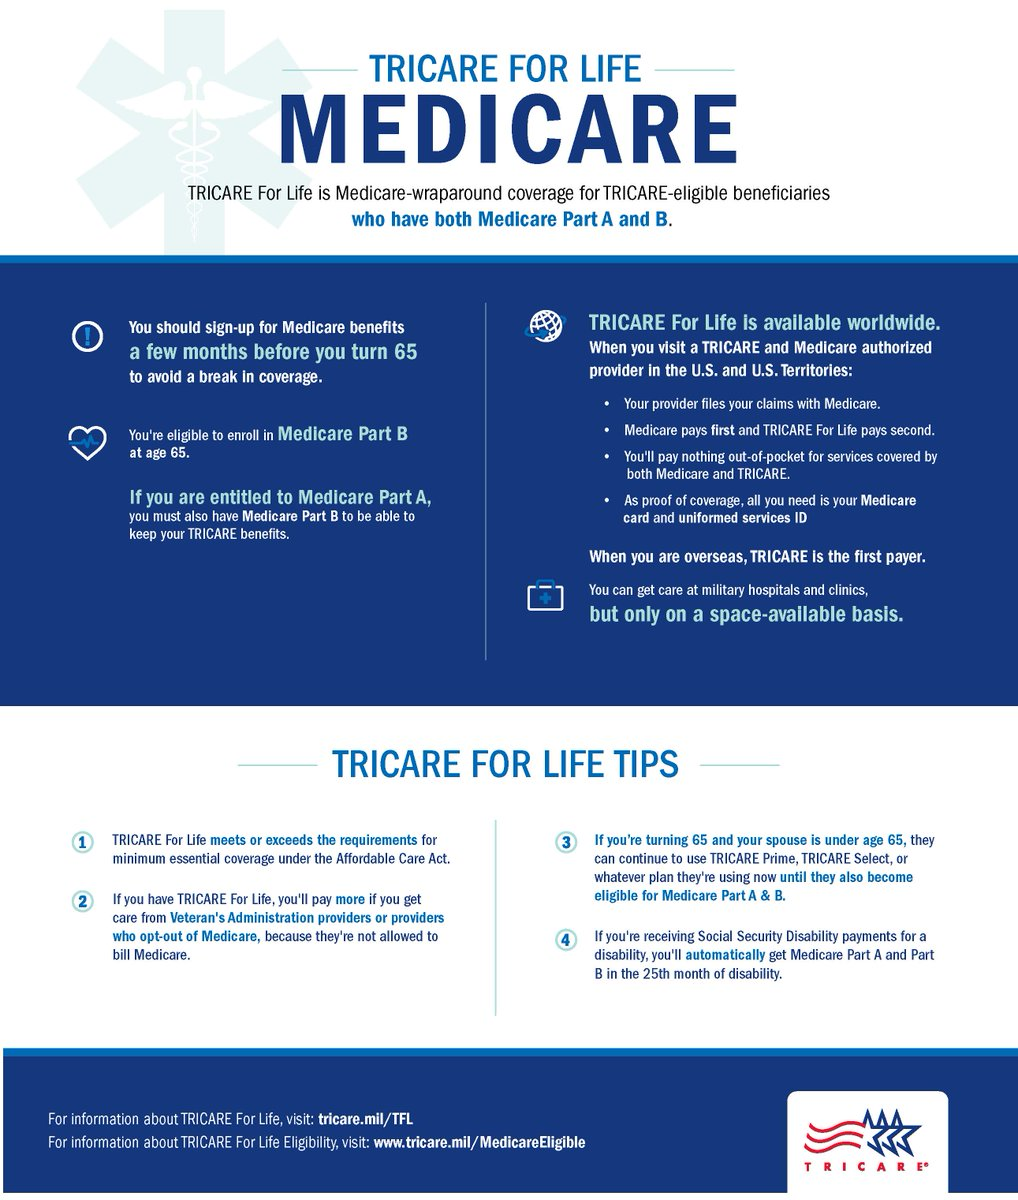 TRICARE on Twitter: